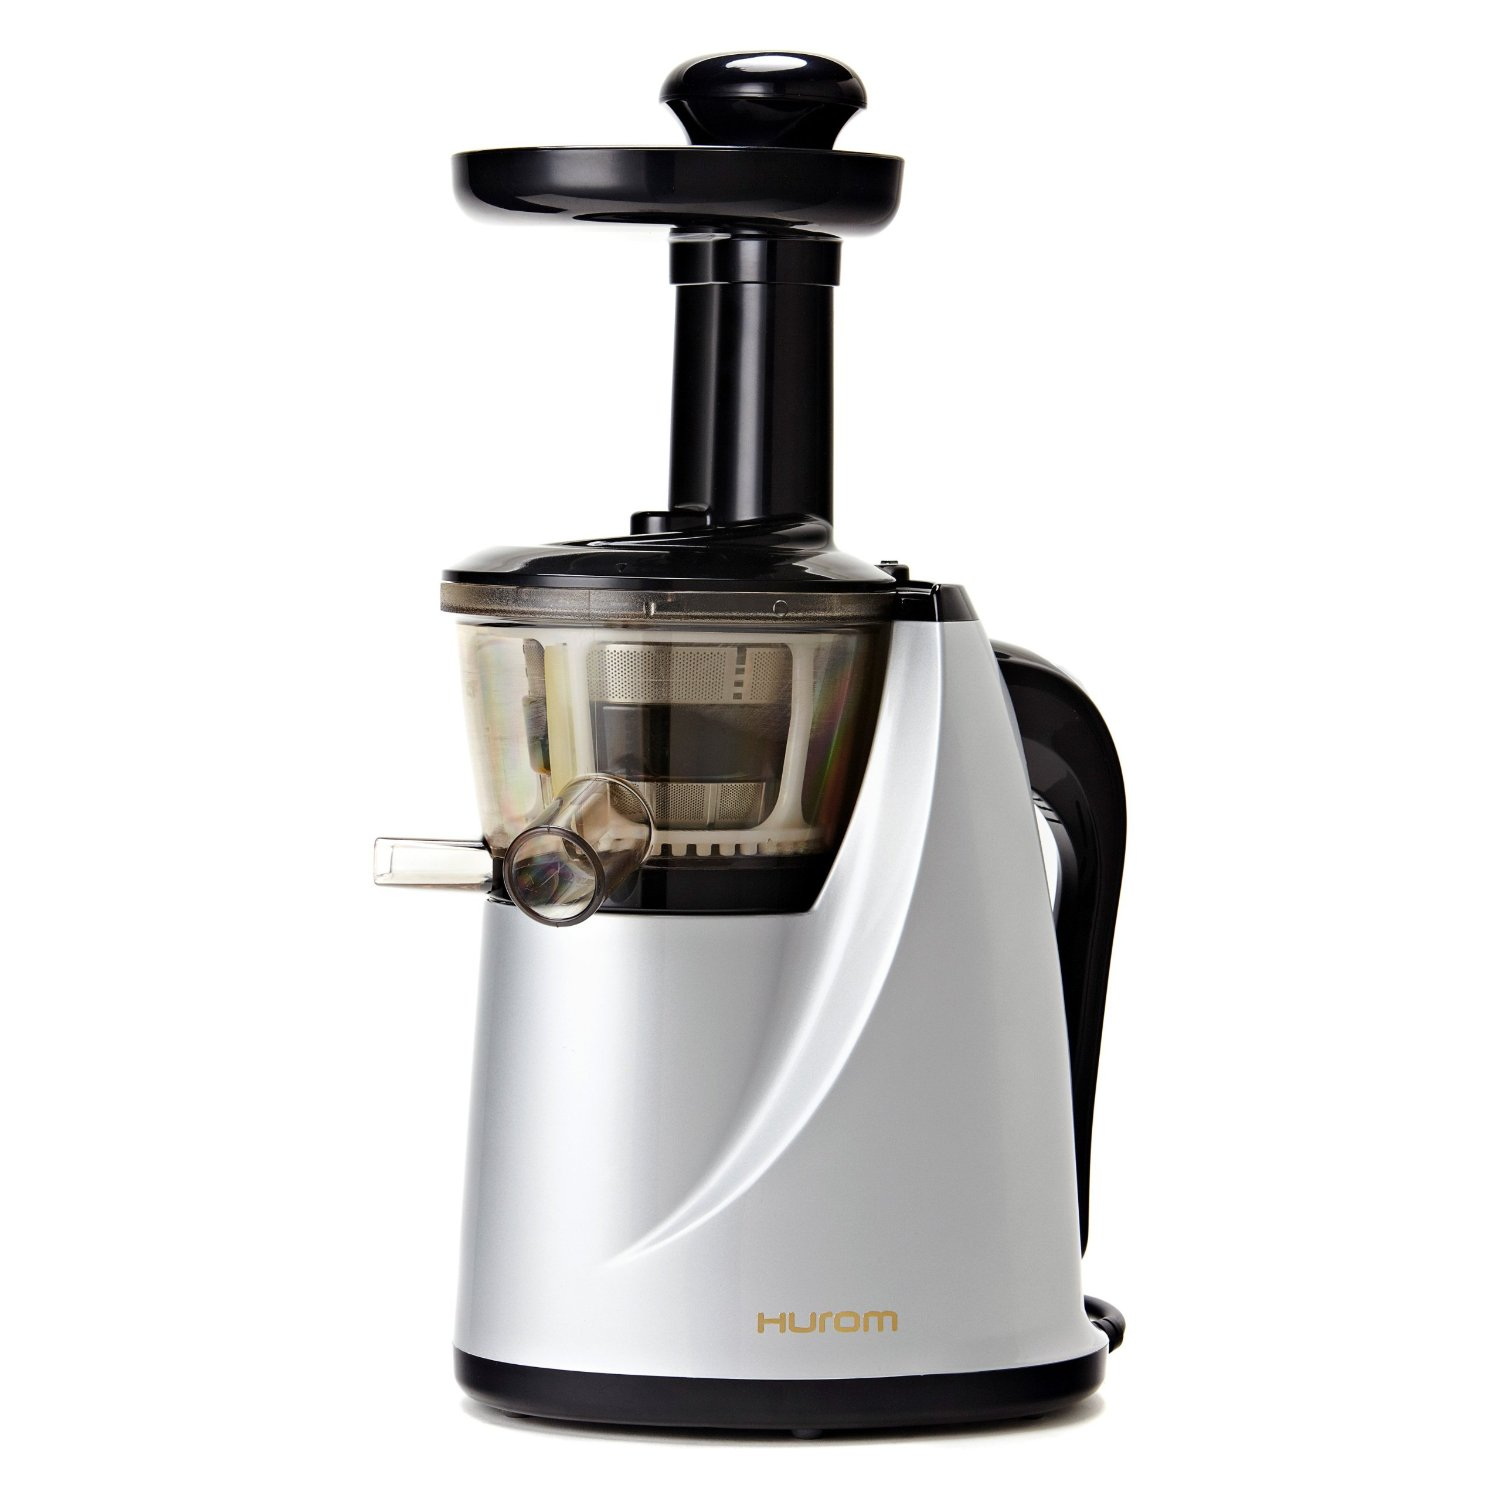 Hurom Slow Juicer Hu 400 Test : Hurom HU-100 Masticating Slow Juicer Review - Best Cold Press Juicers